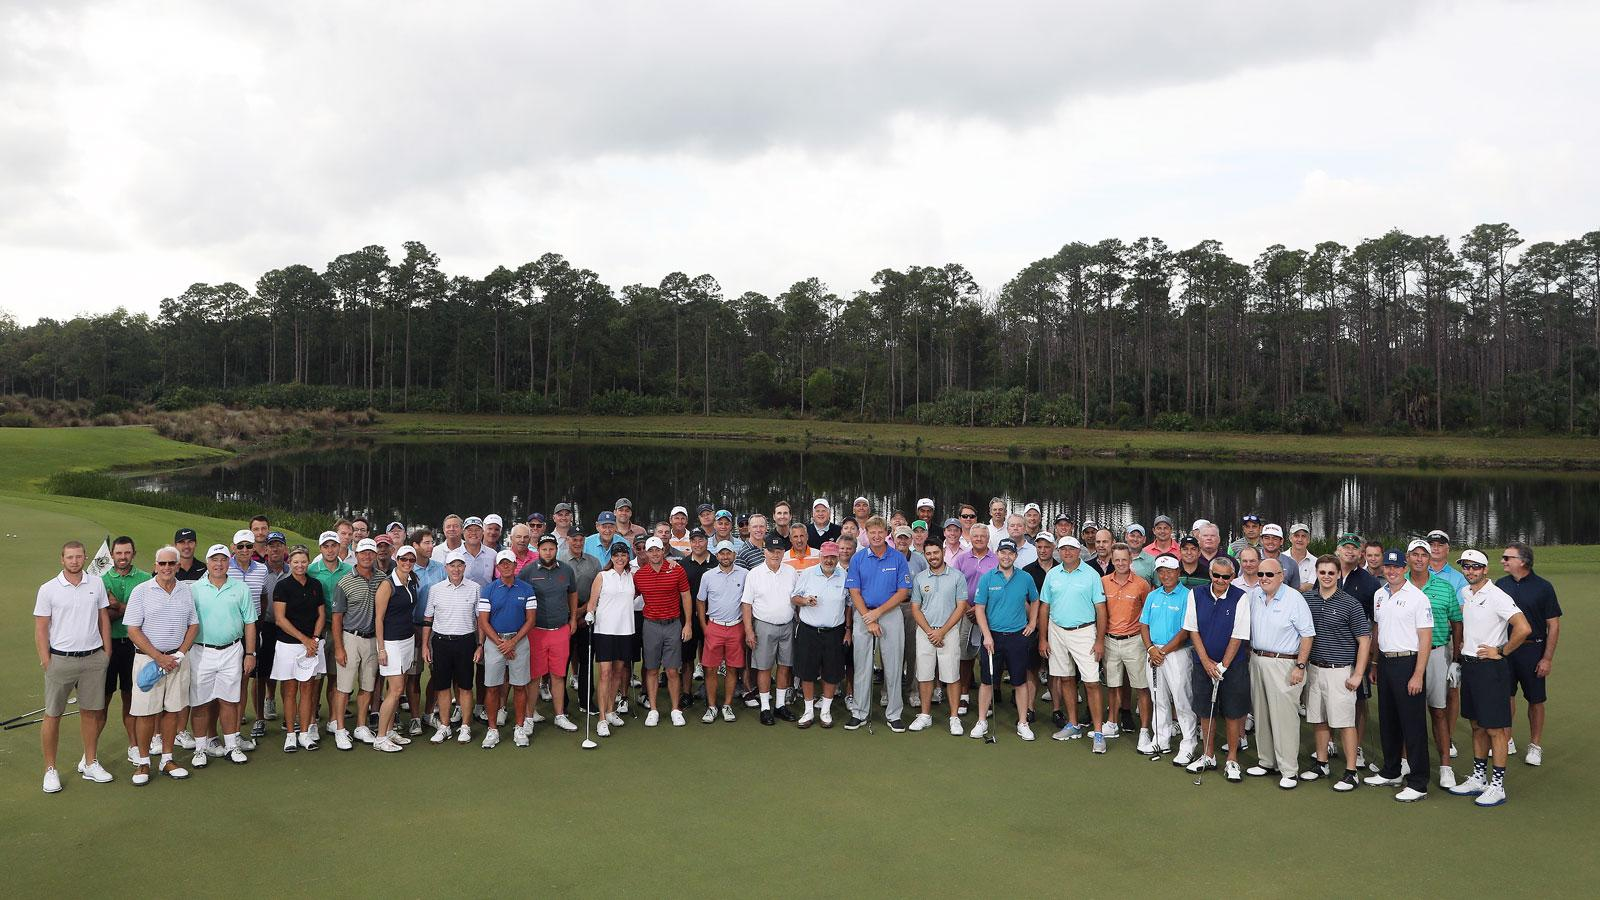 The ninth annual Els for Autism Pro-Am was held at Old Palm Golf Club in Palm Beach Gardens, Florida.